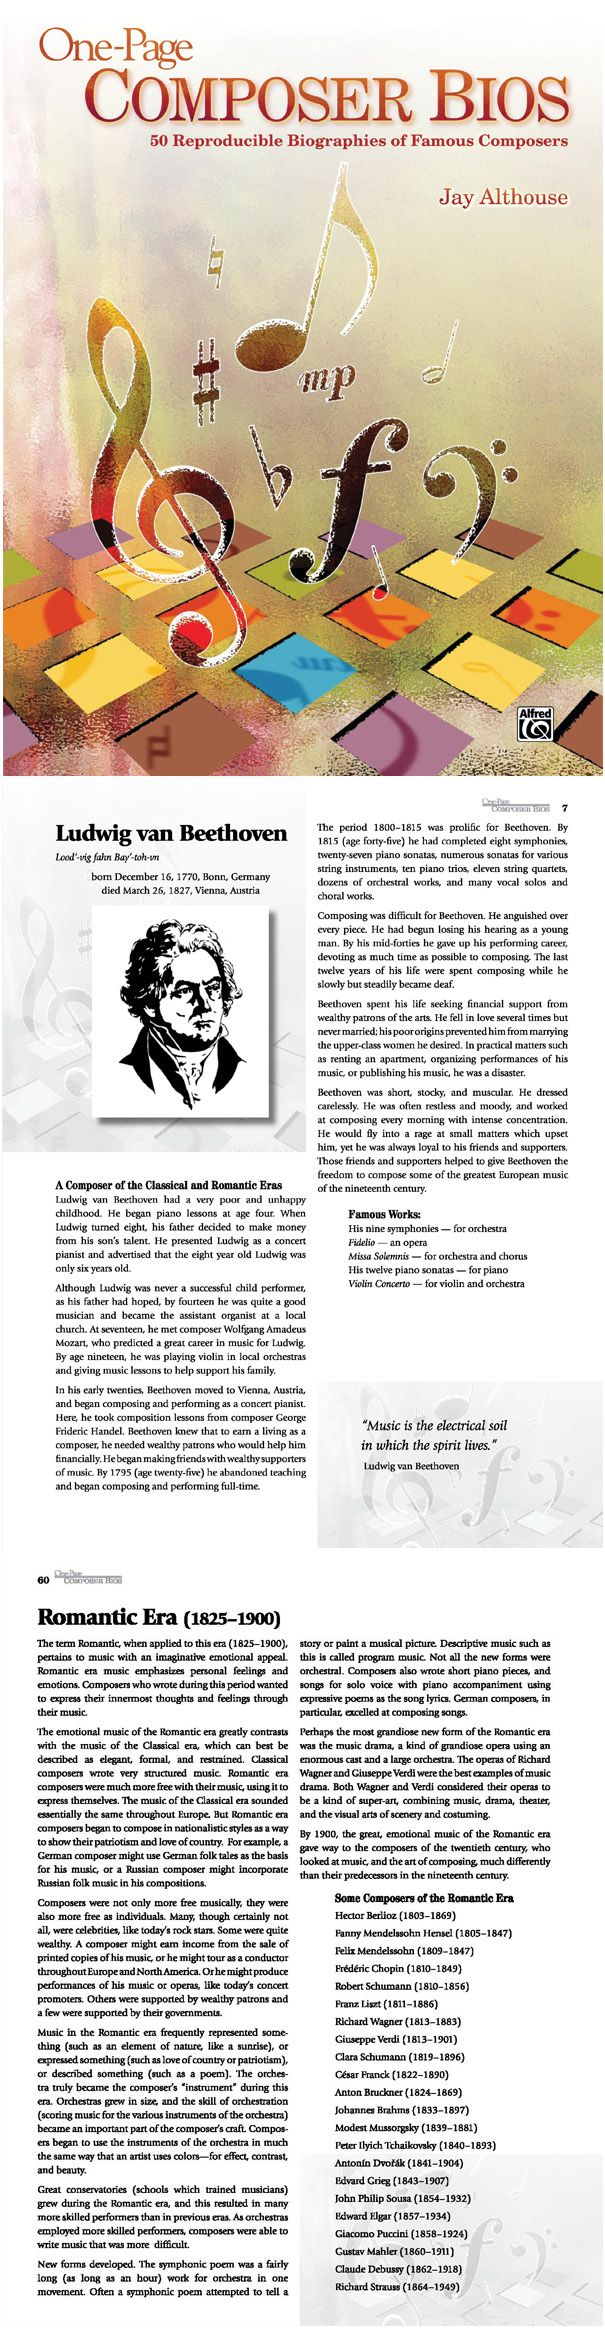 worksheet Beethoven Worksheet 78 best images about beethoven on pinterest ipod dock music rooms and violin